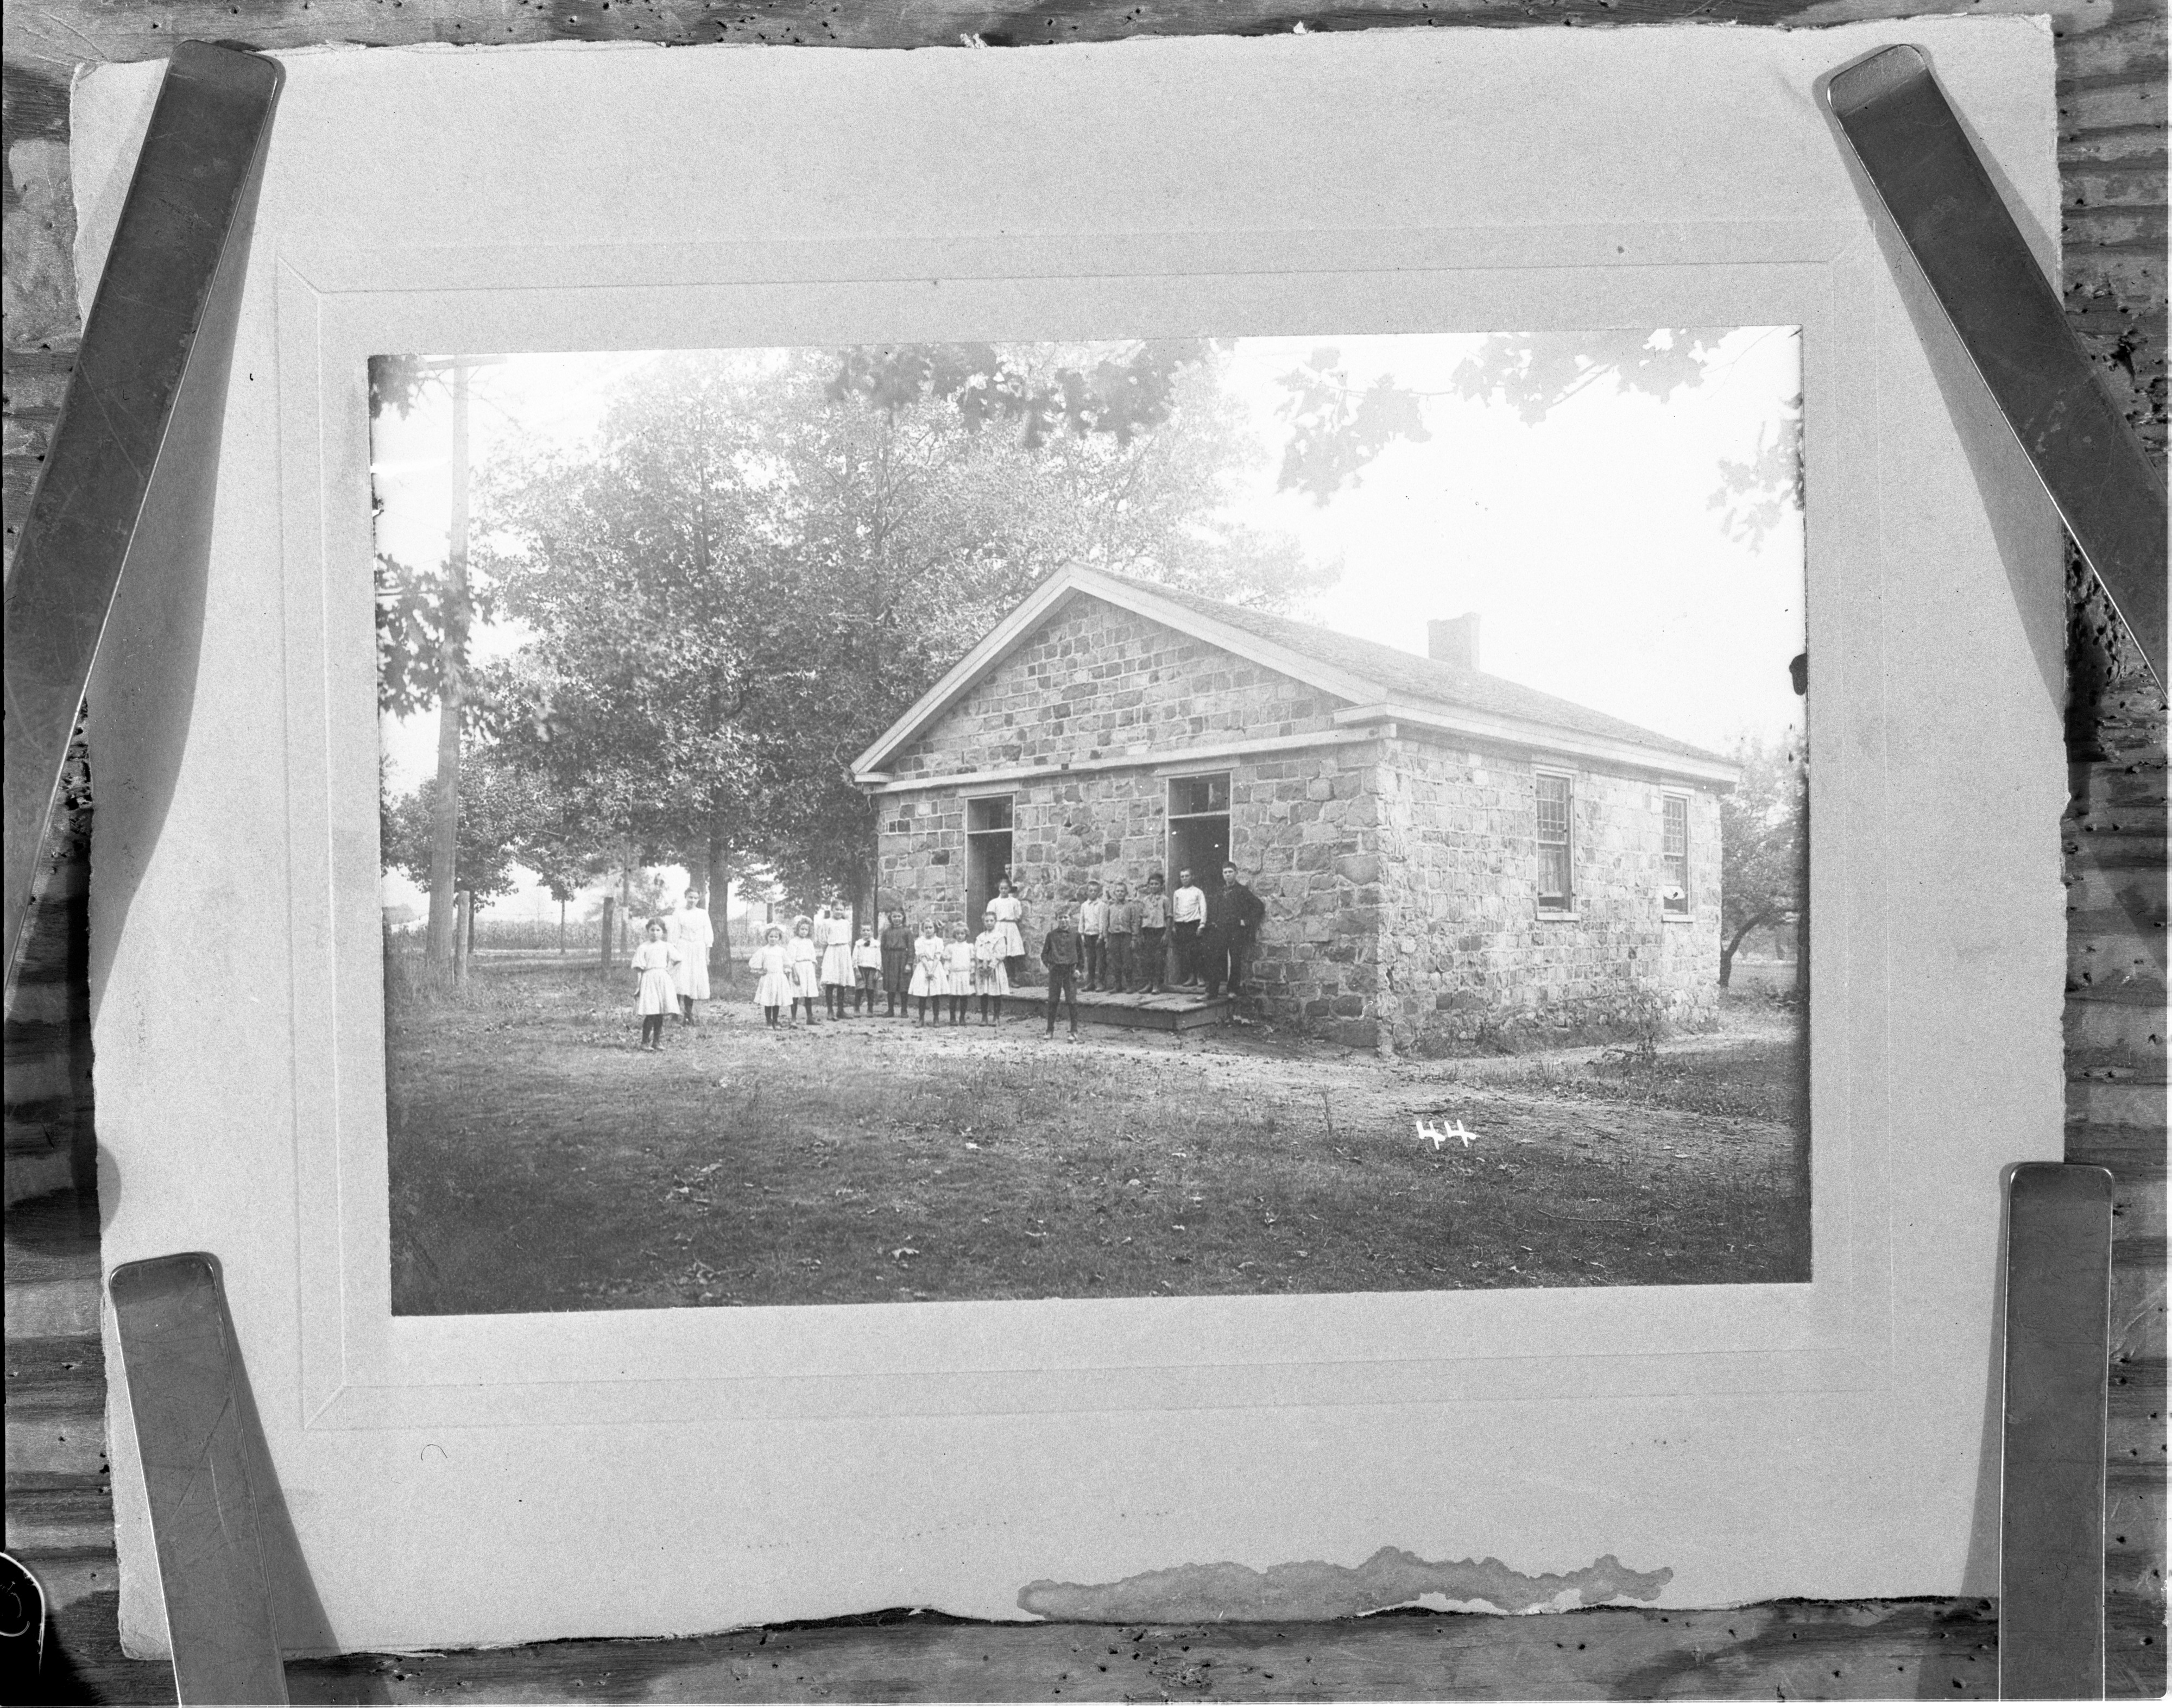 Stone School, 1911 (copy of original photograph) image